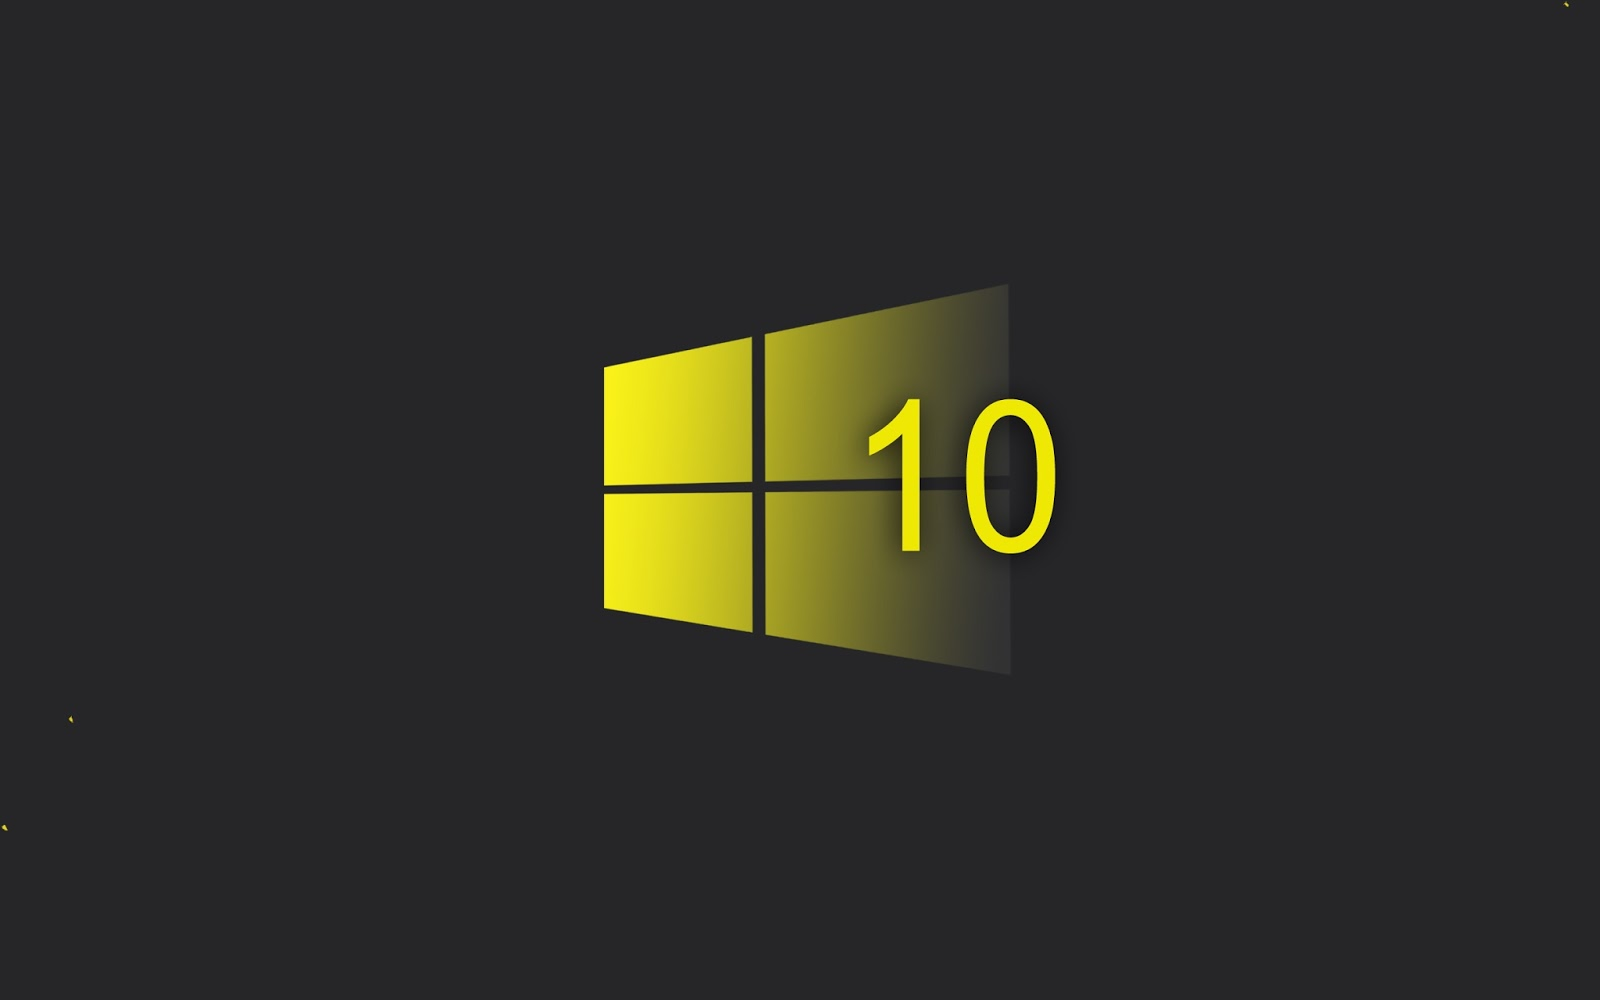 how to download windows 10 free